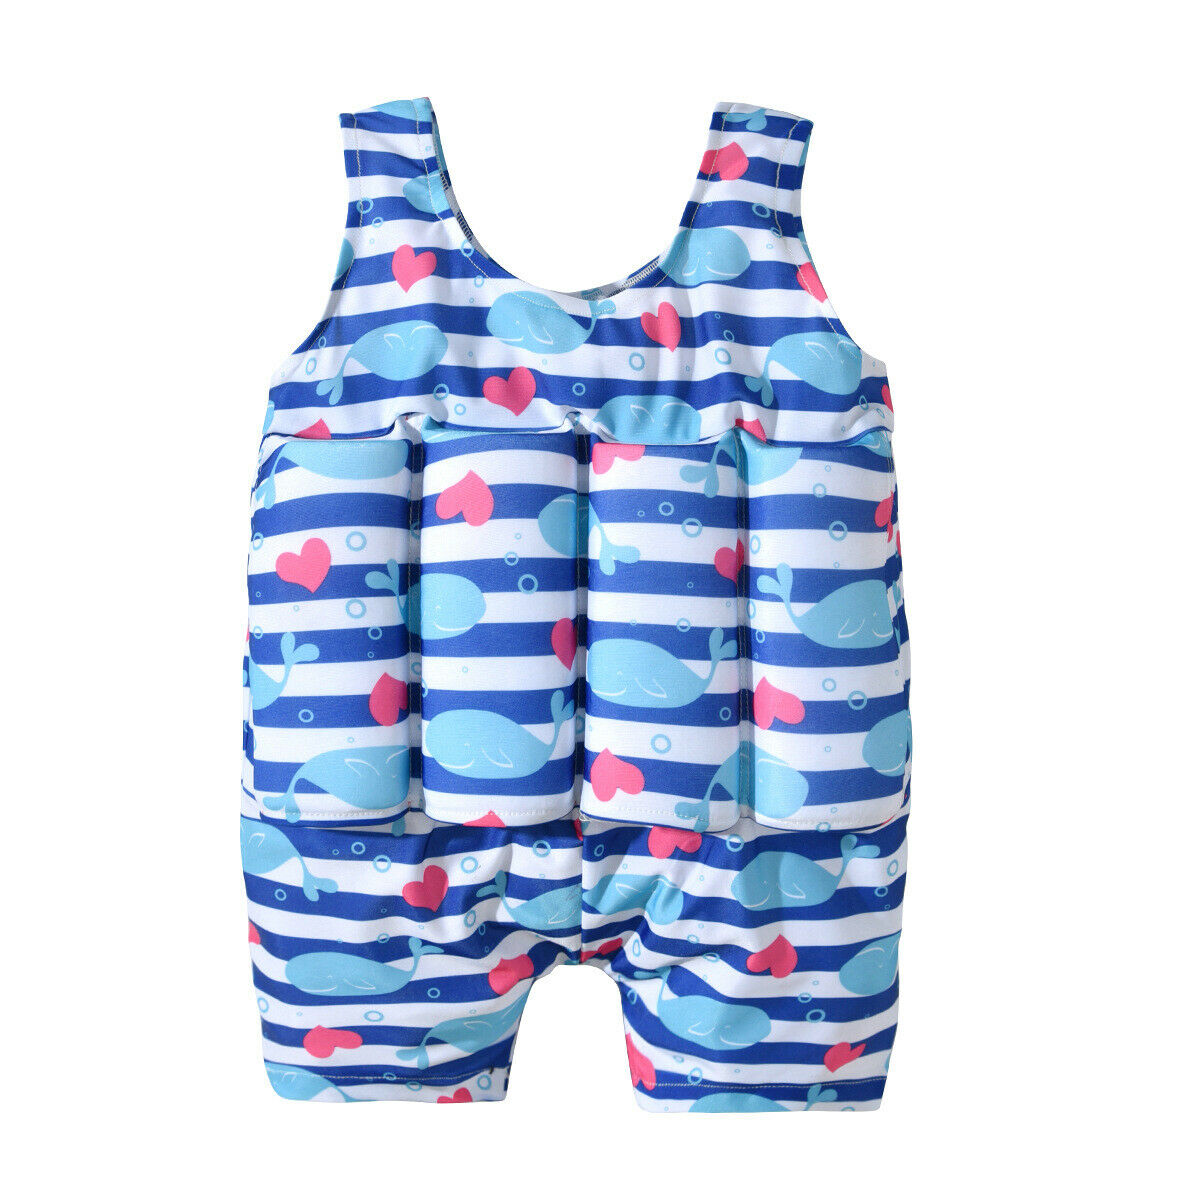 2019 Newest Fashion Explosive Baby Unisex Swimwear Safety Buoyancy Float Animal Print Swimsuit For Toddler Children Kid Boy Girl